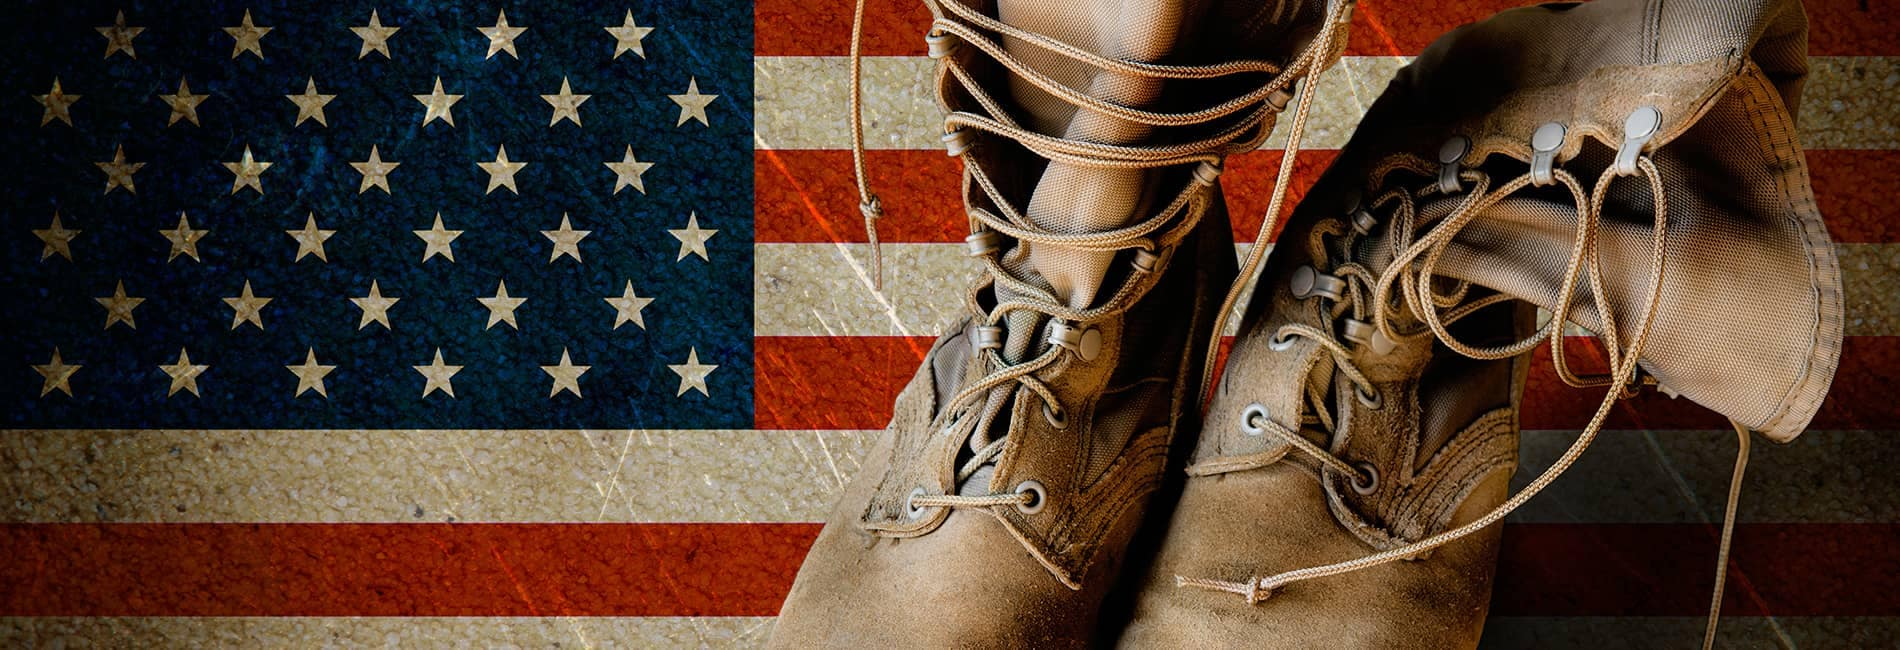 American Flag with Military Boots